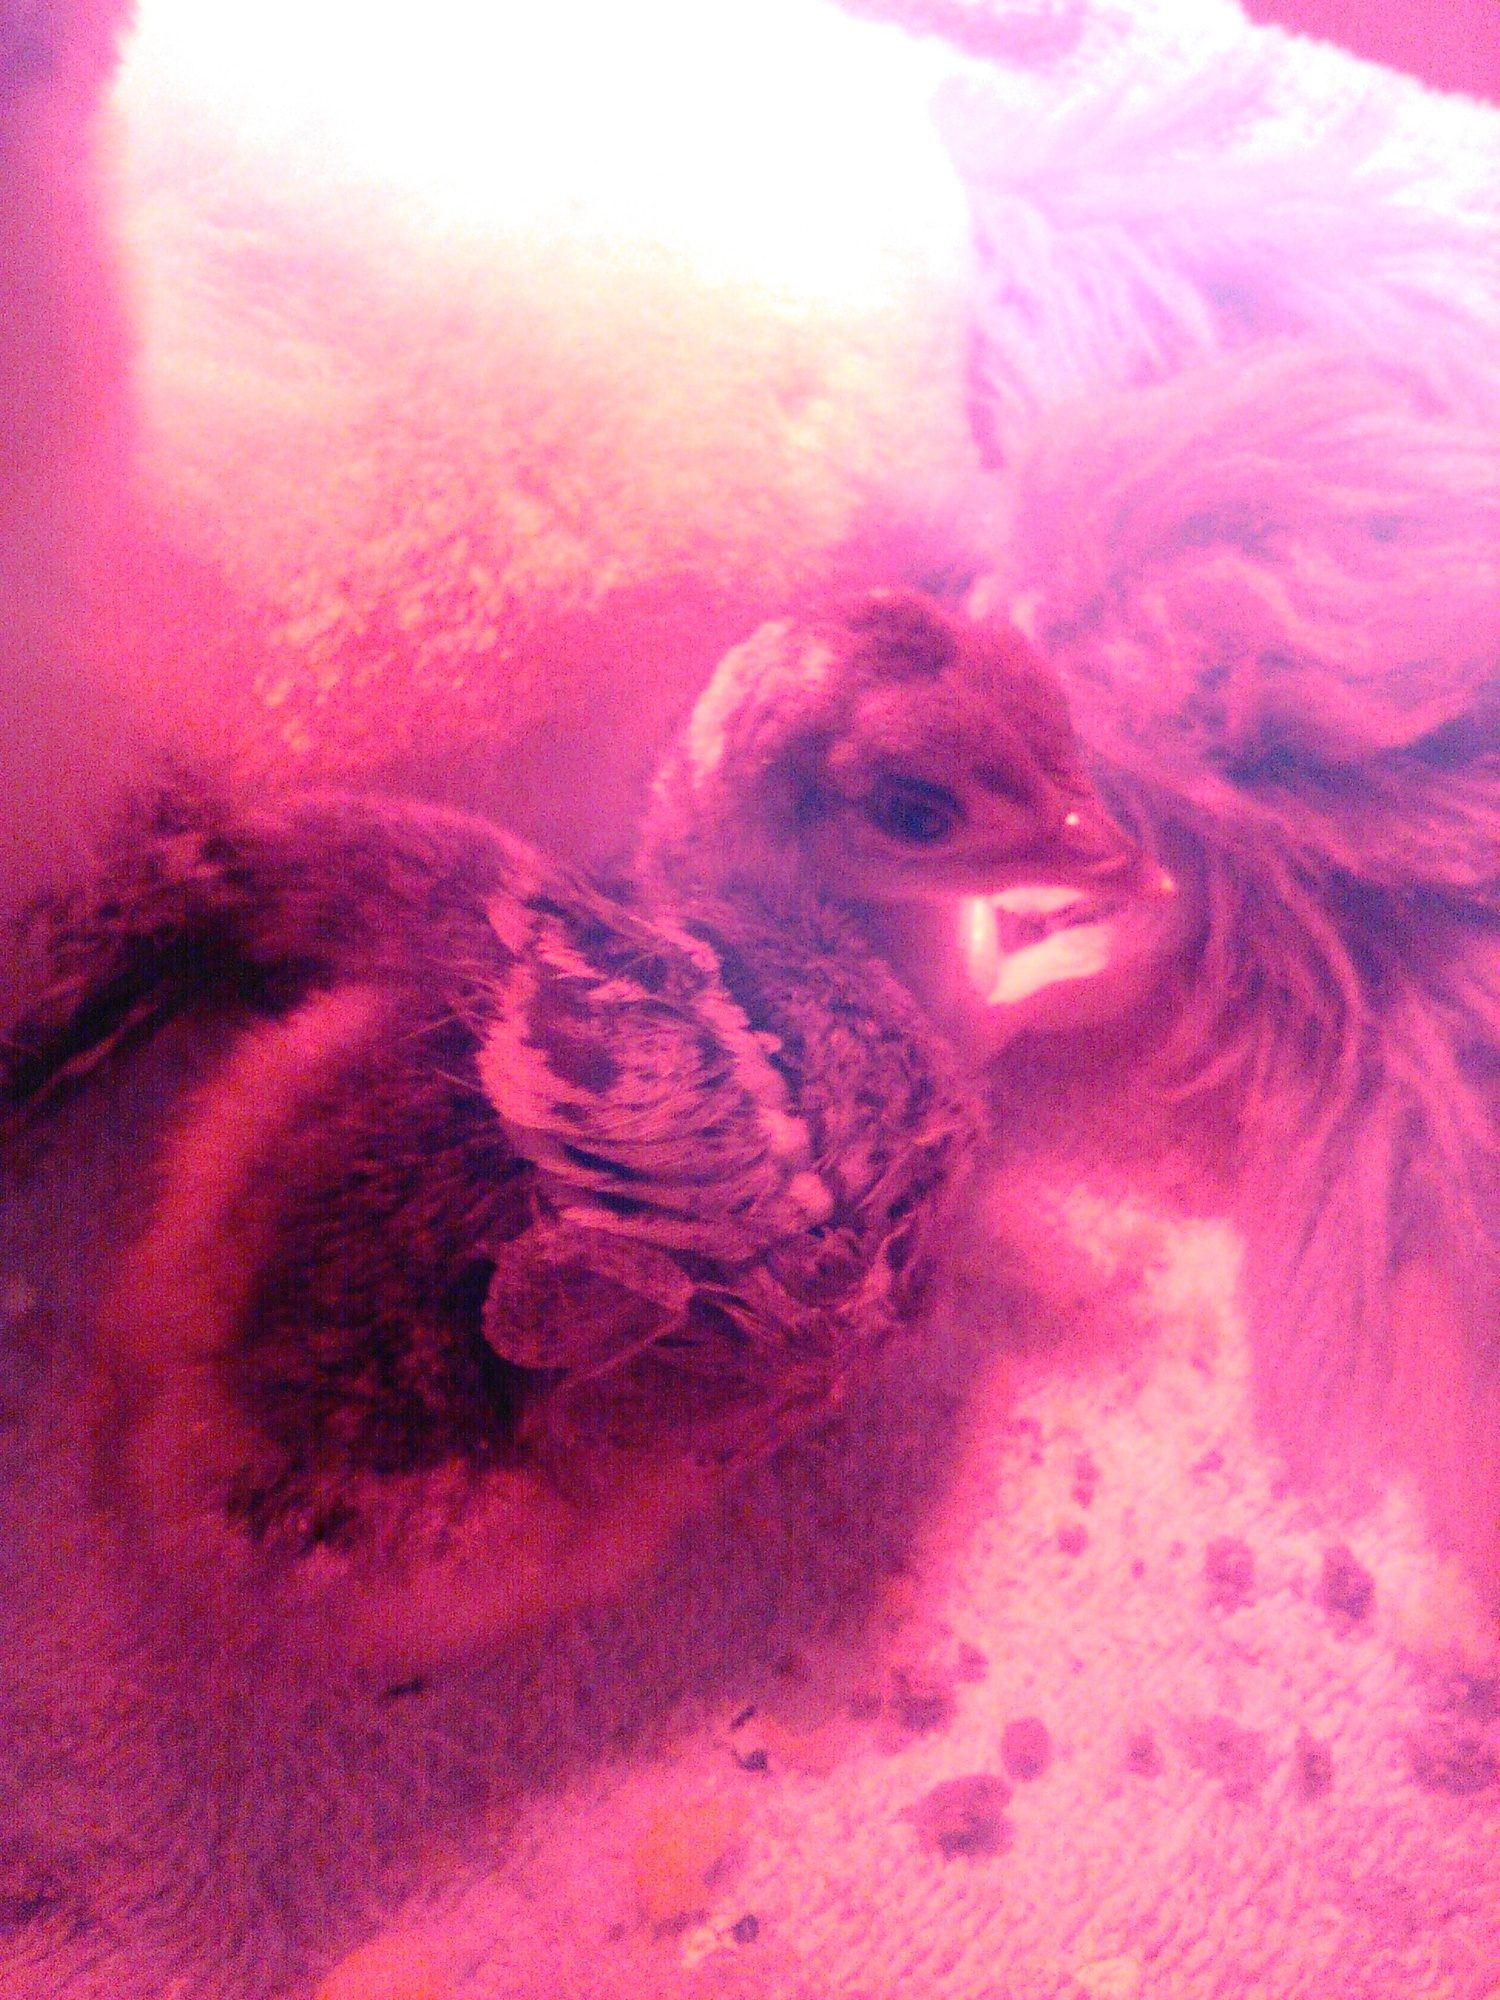 Tripp, our baby peachick with wonky legs.  He is under 24 hours old in this picture